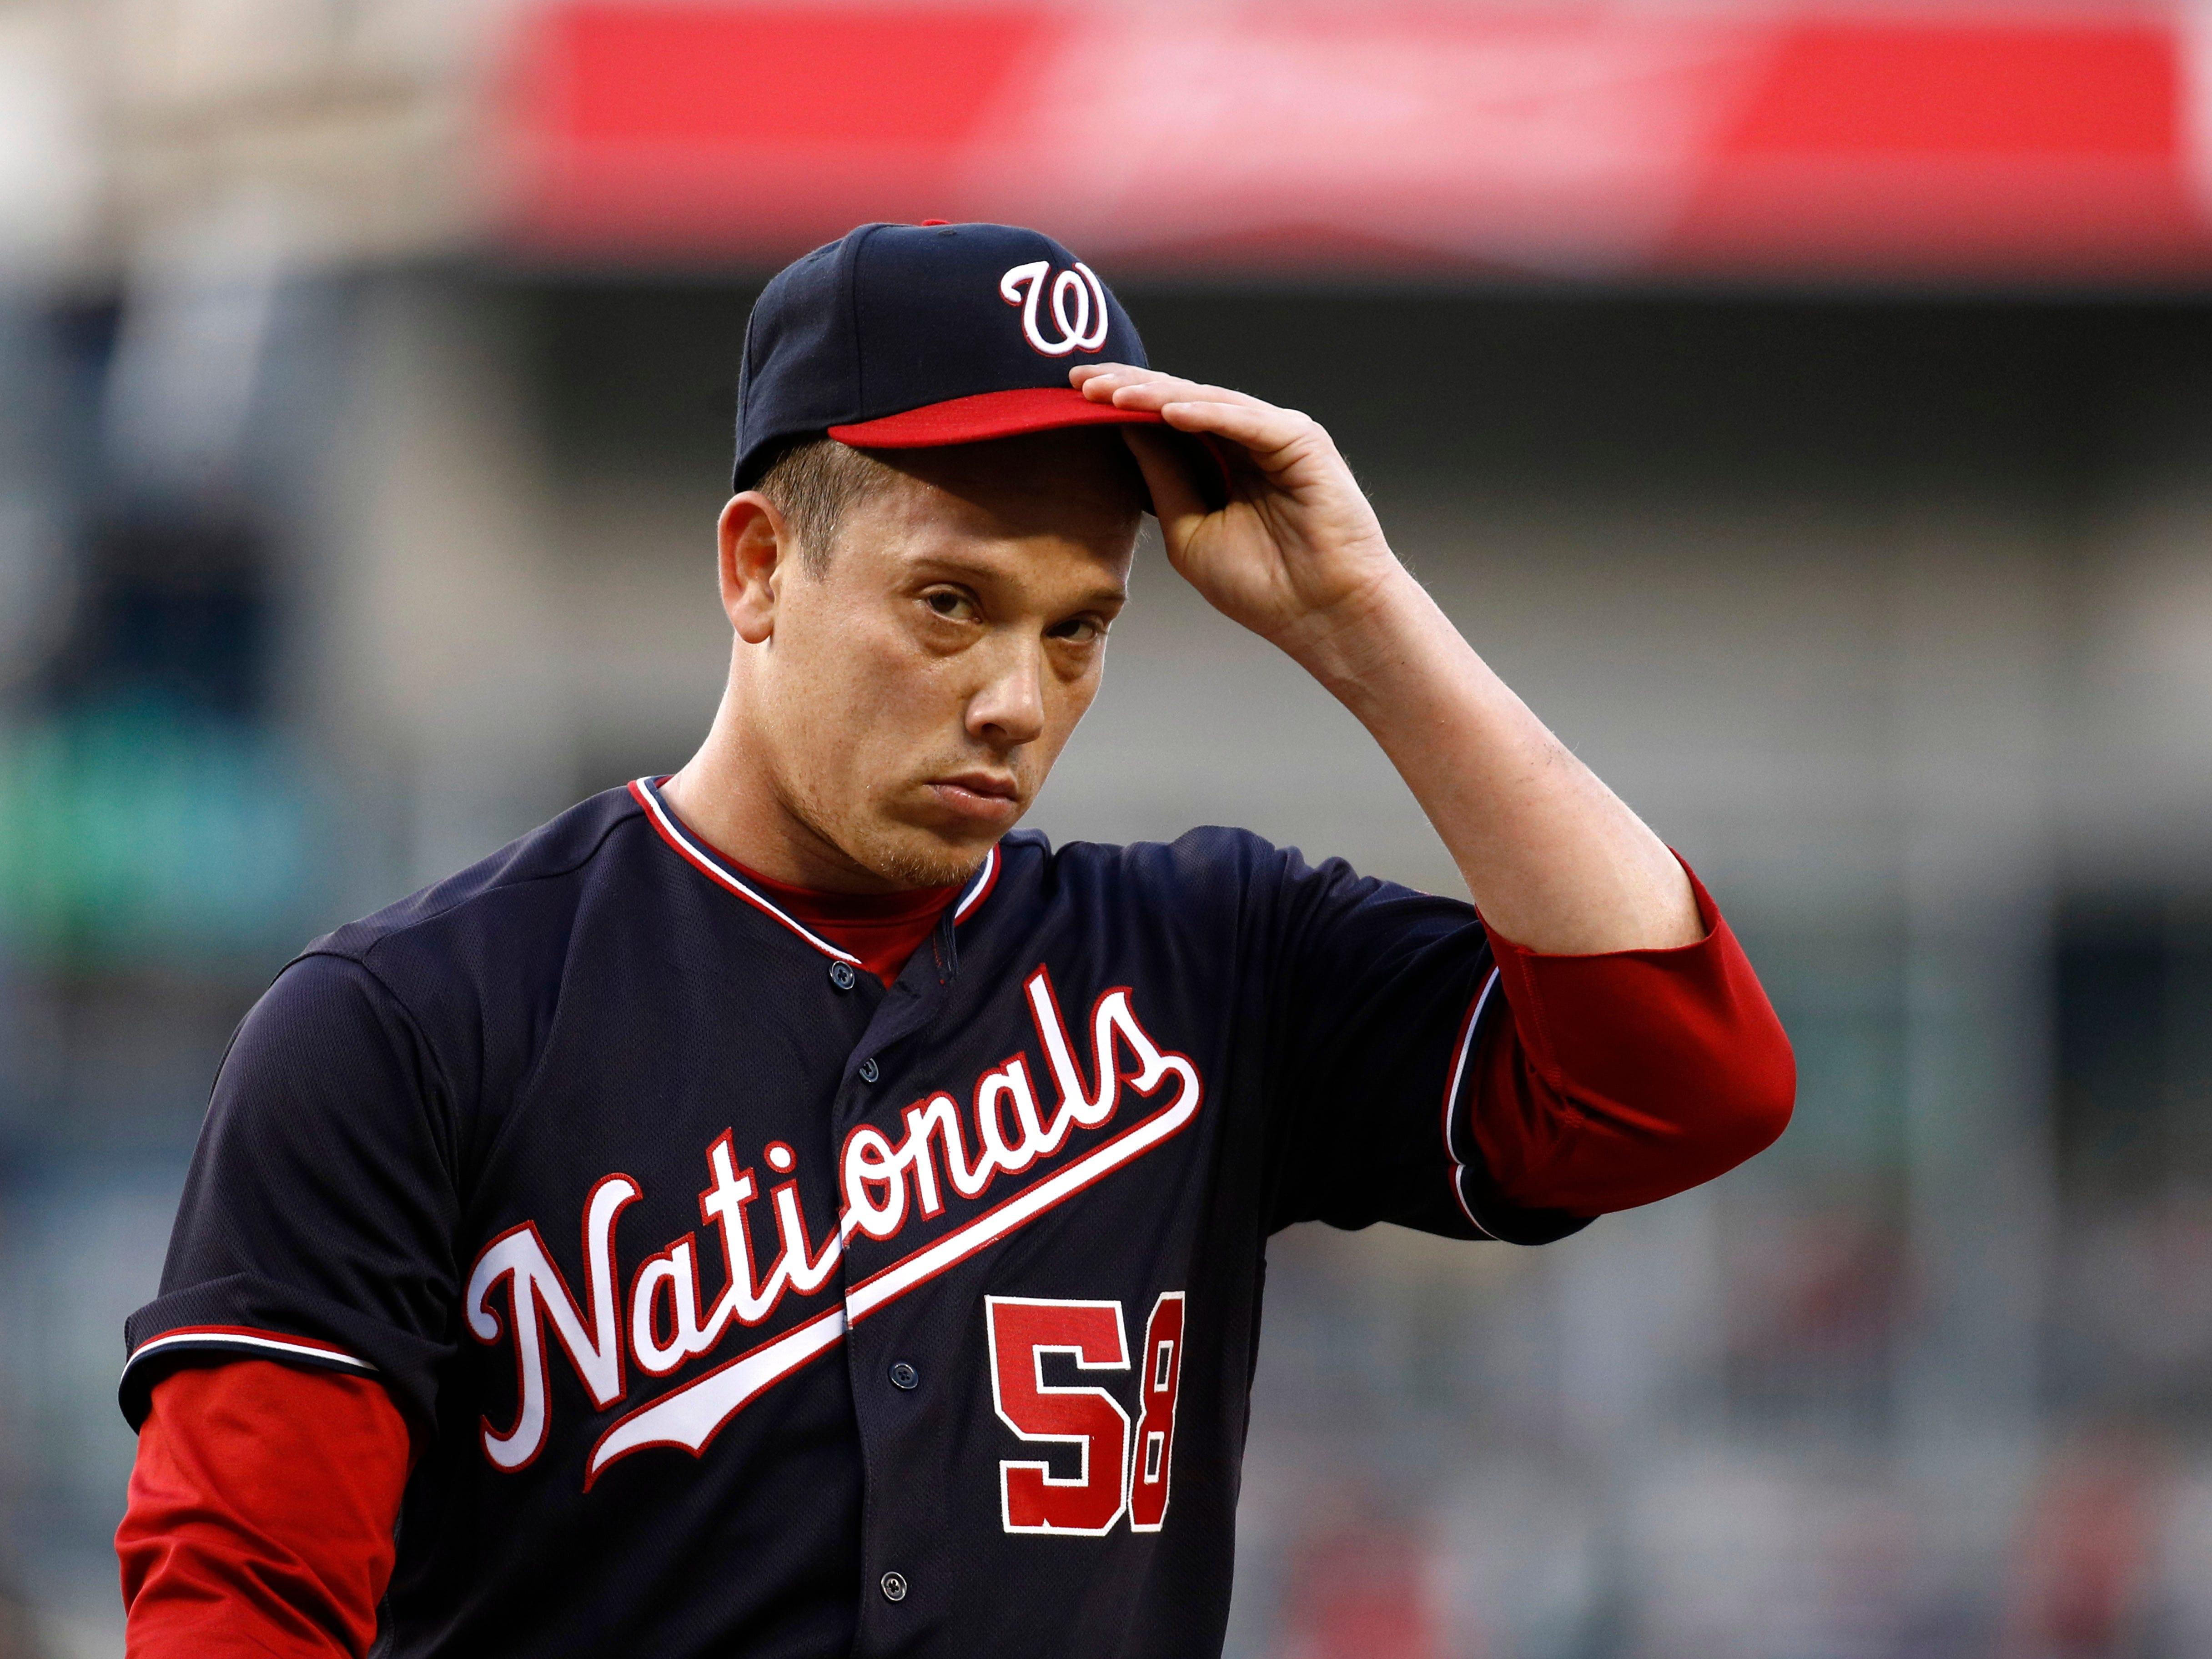 Washington Nationals starting pitcher Jeremy Hellickson walks off the field in the middle of the first inning of the team's game against the New York Mets, Tuesday, May 14, 2019, in Washington. Hellickson gave up a grand slam in the inning.